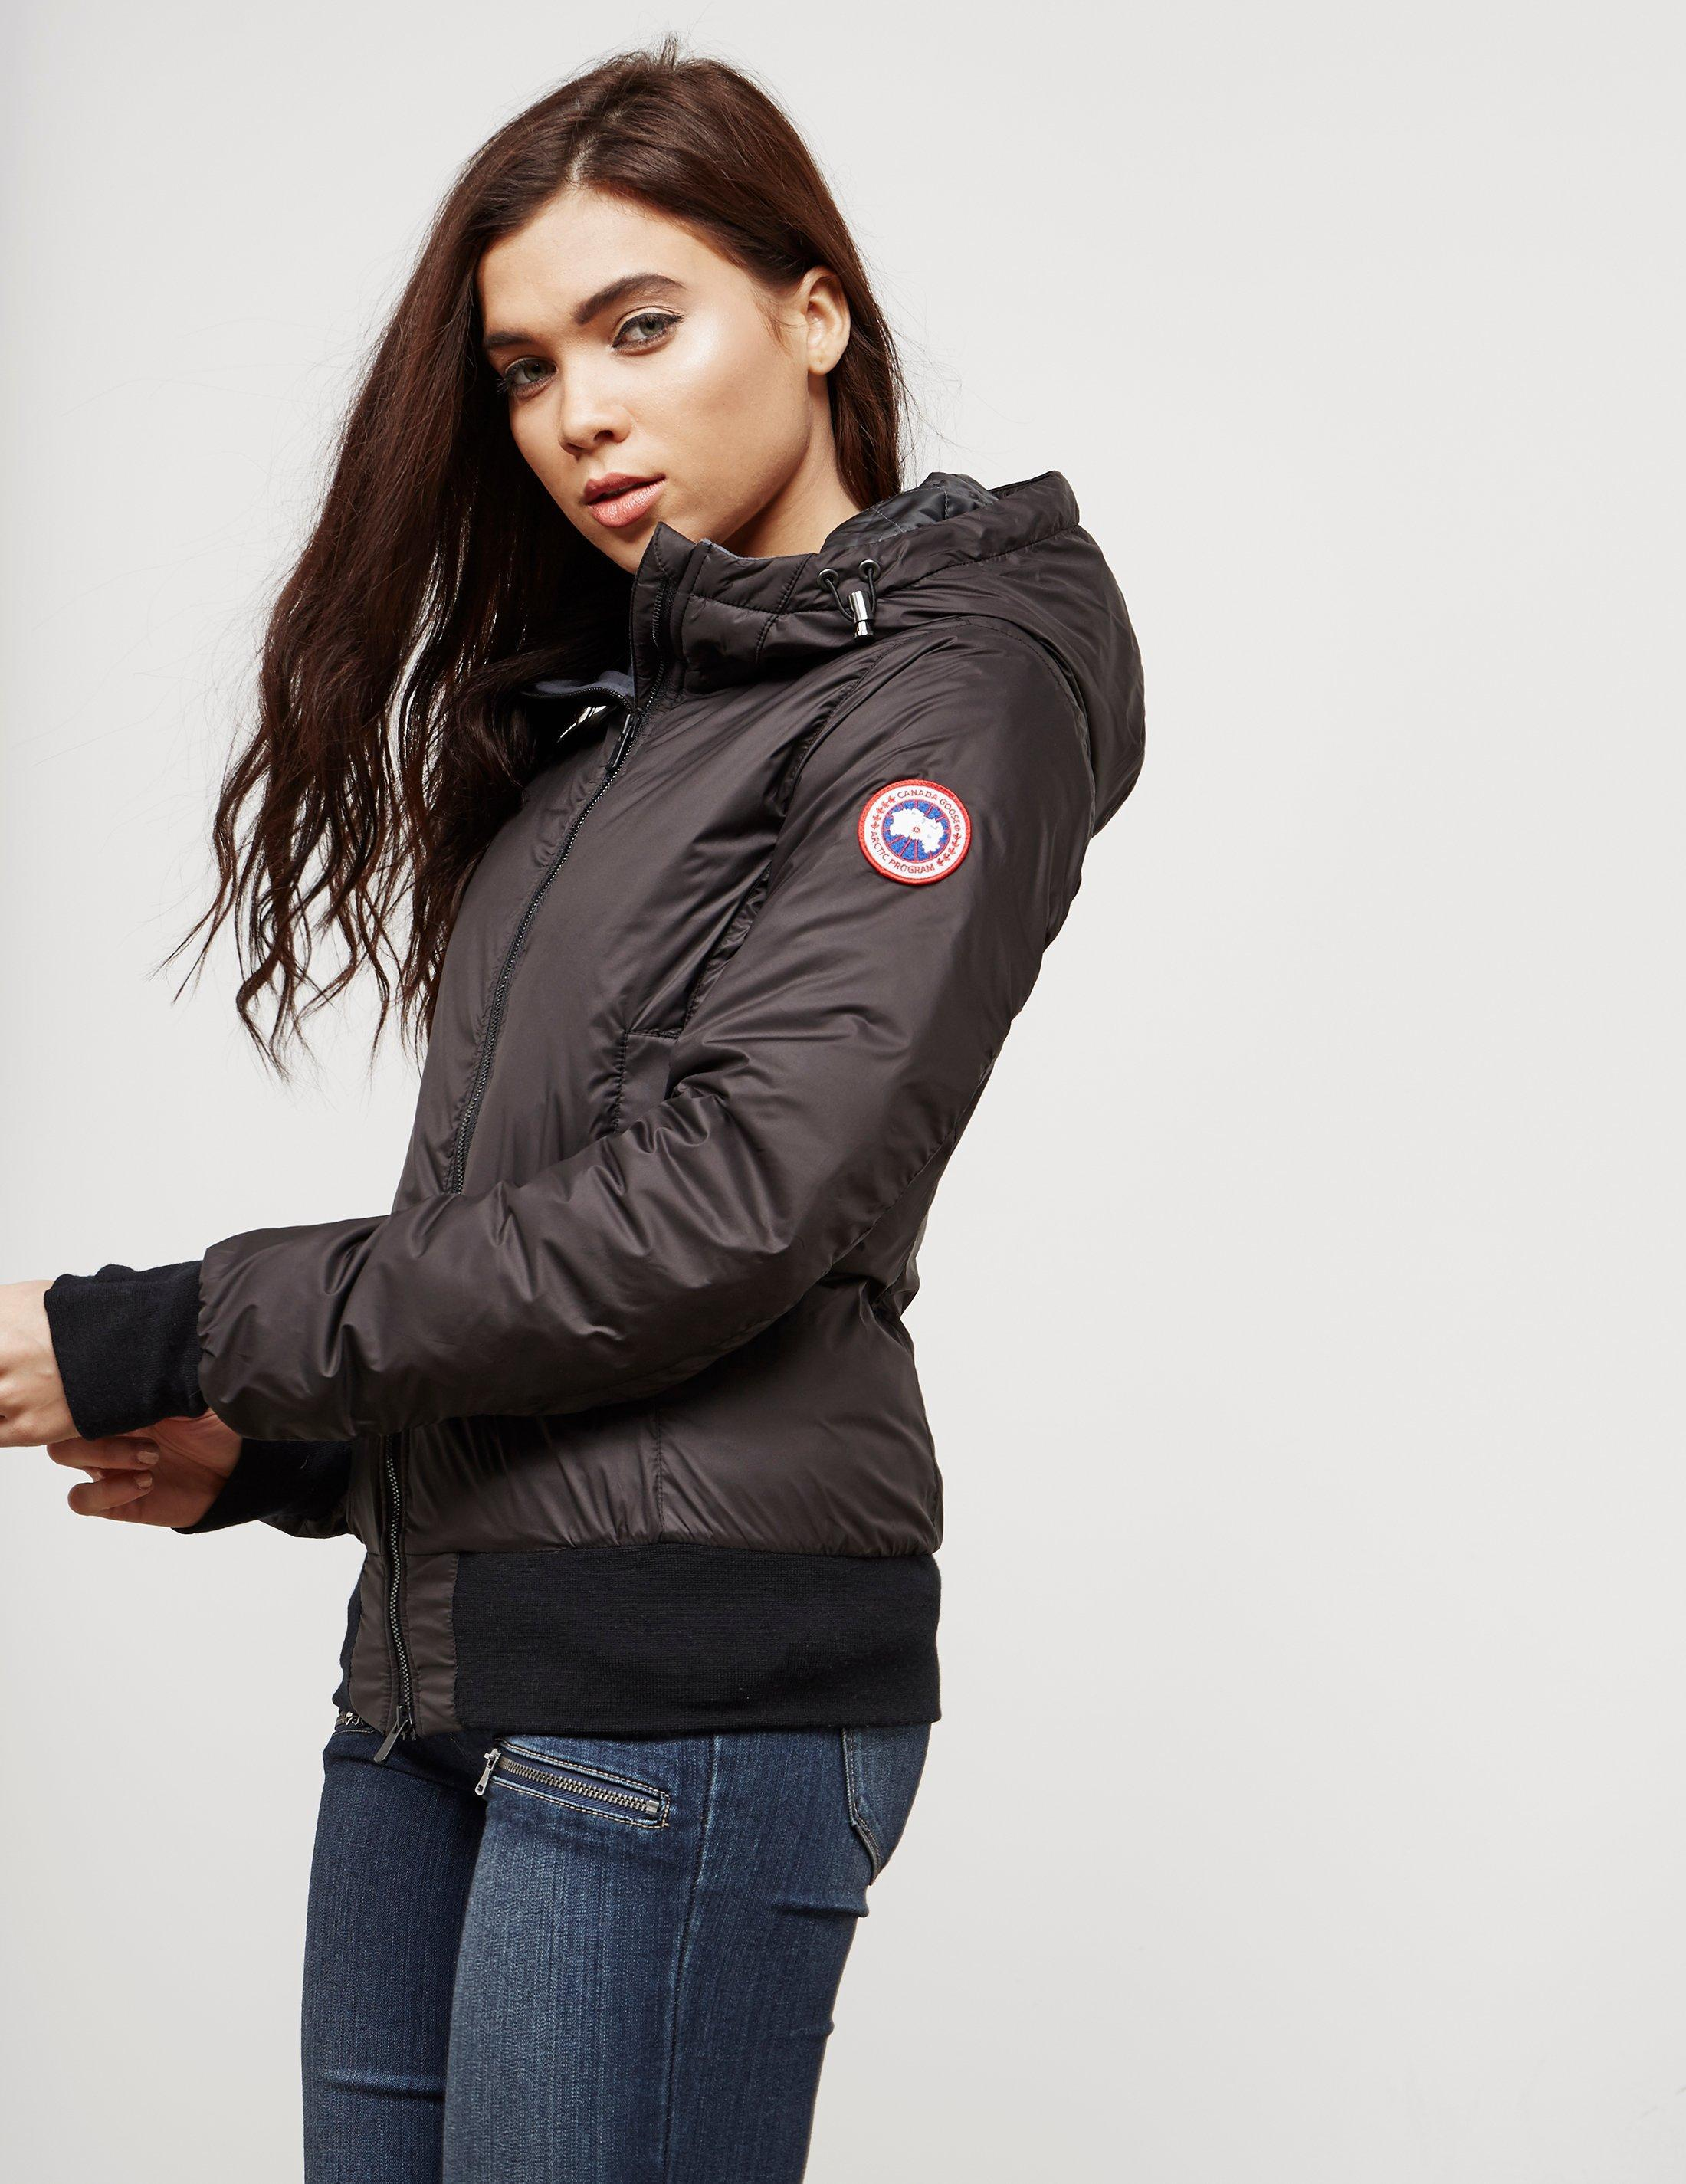 Dore down jacket Canada Goose Cheap Fast Delivery DK4XHN